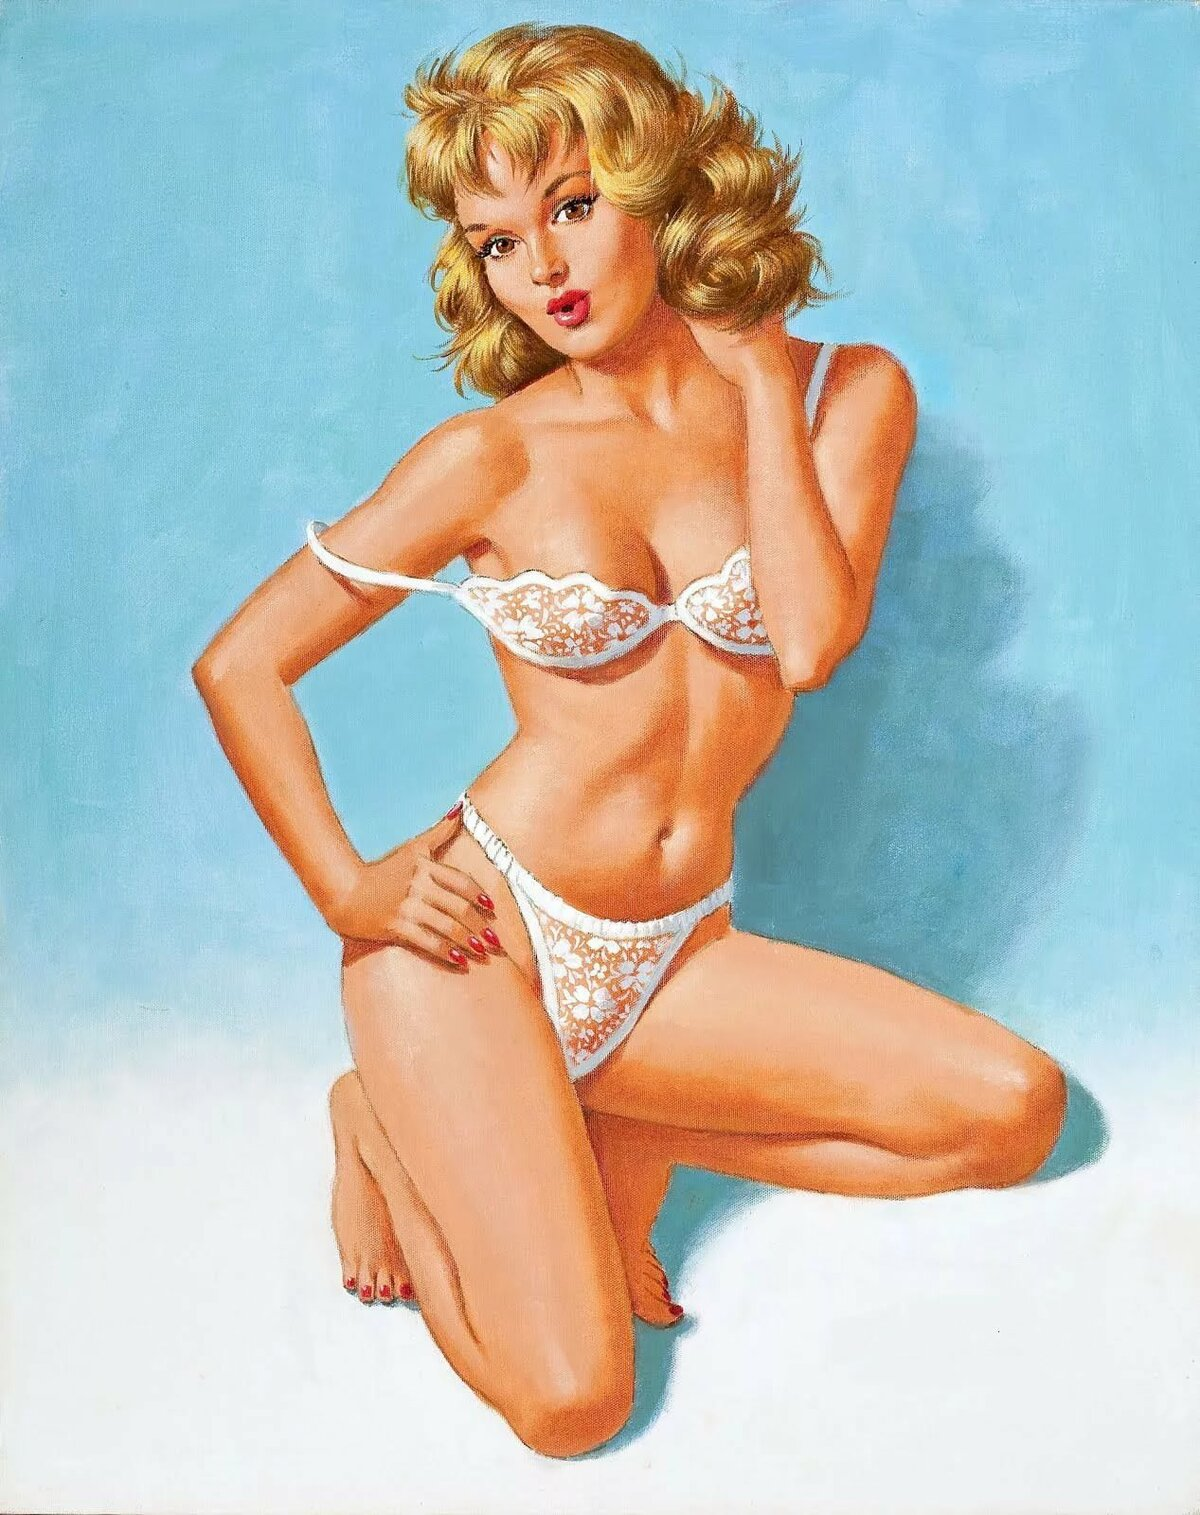 Sexy pin up girls stripping